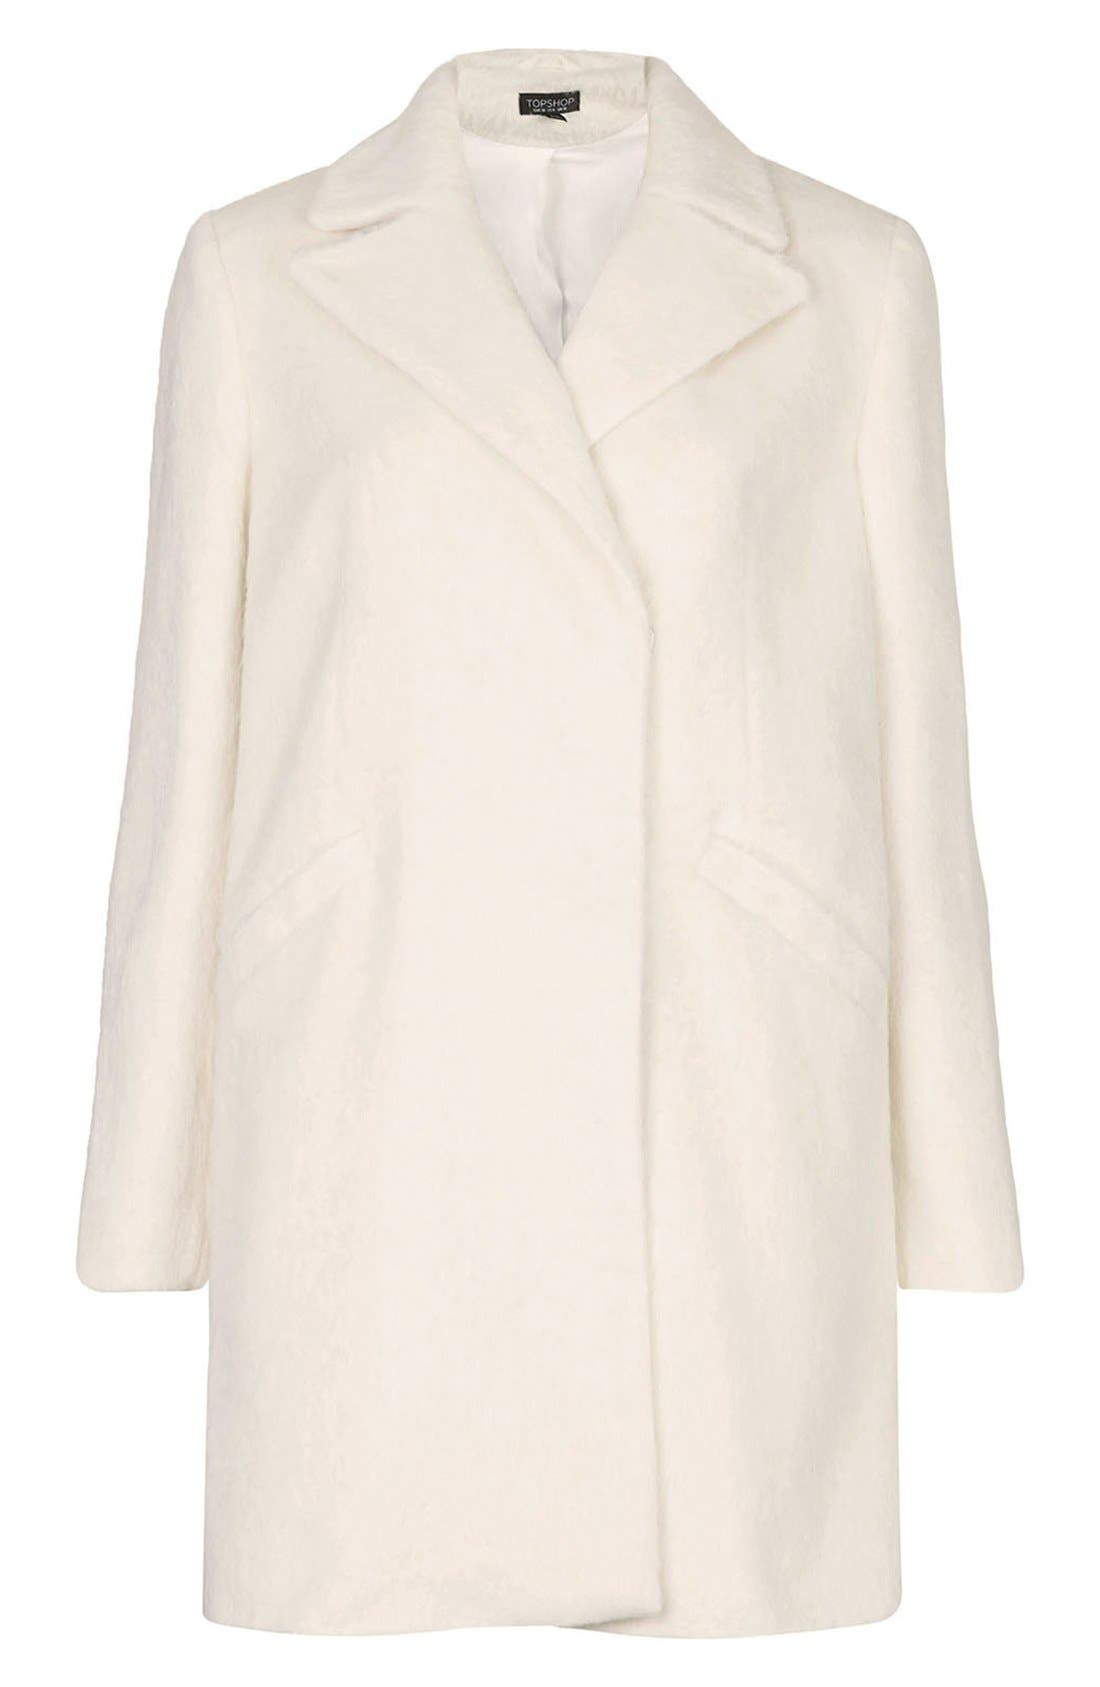 'Molly' Double Breasted Swing Coat,                             Alternate thumbnail 3, color,                             White